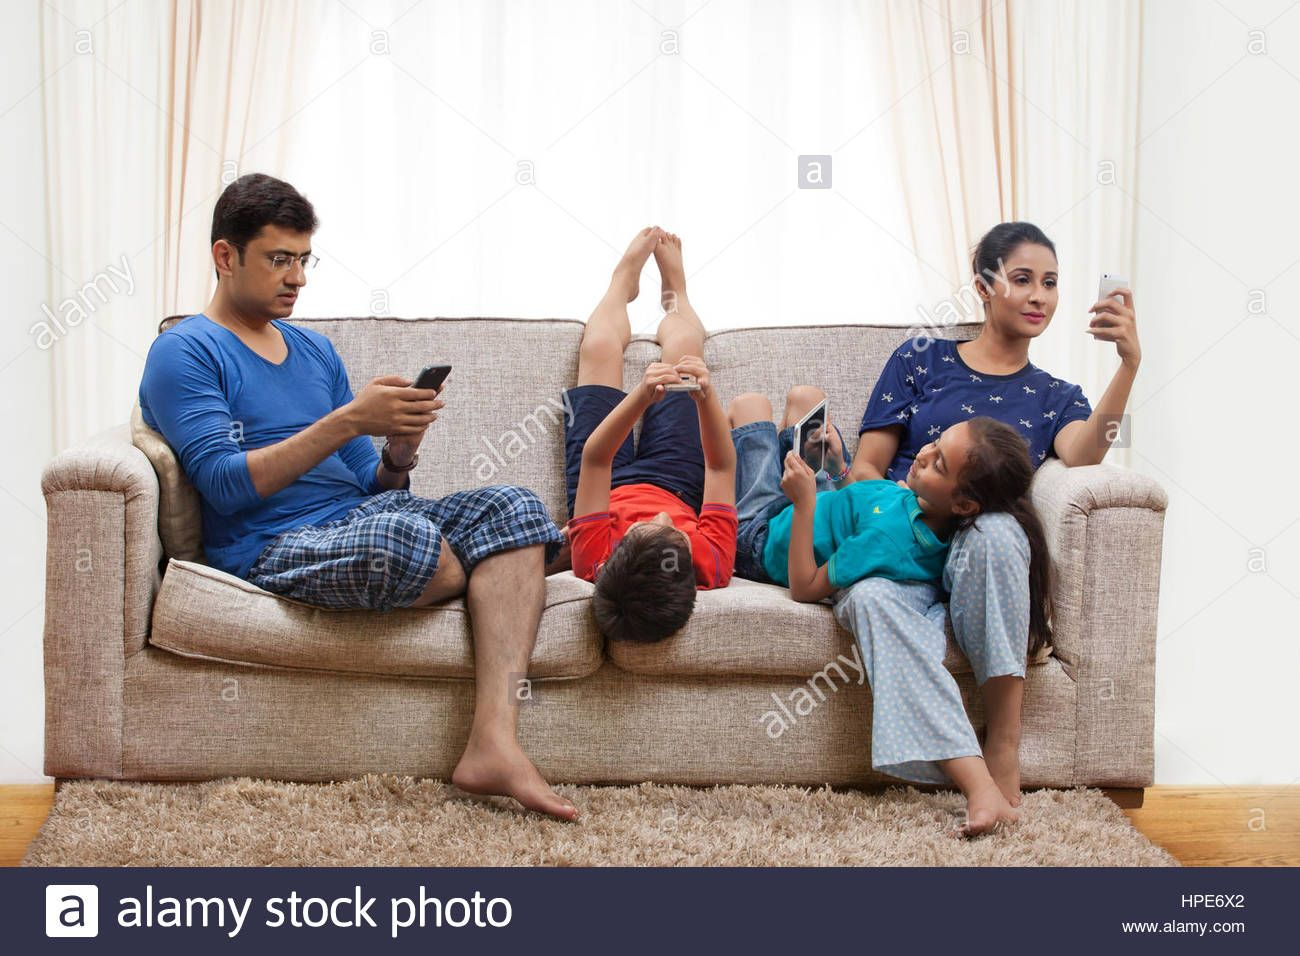 Download this stock image: Family using cell phones and ...